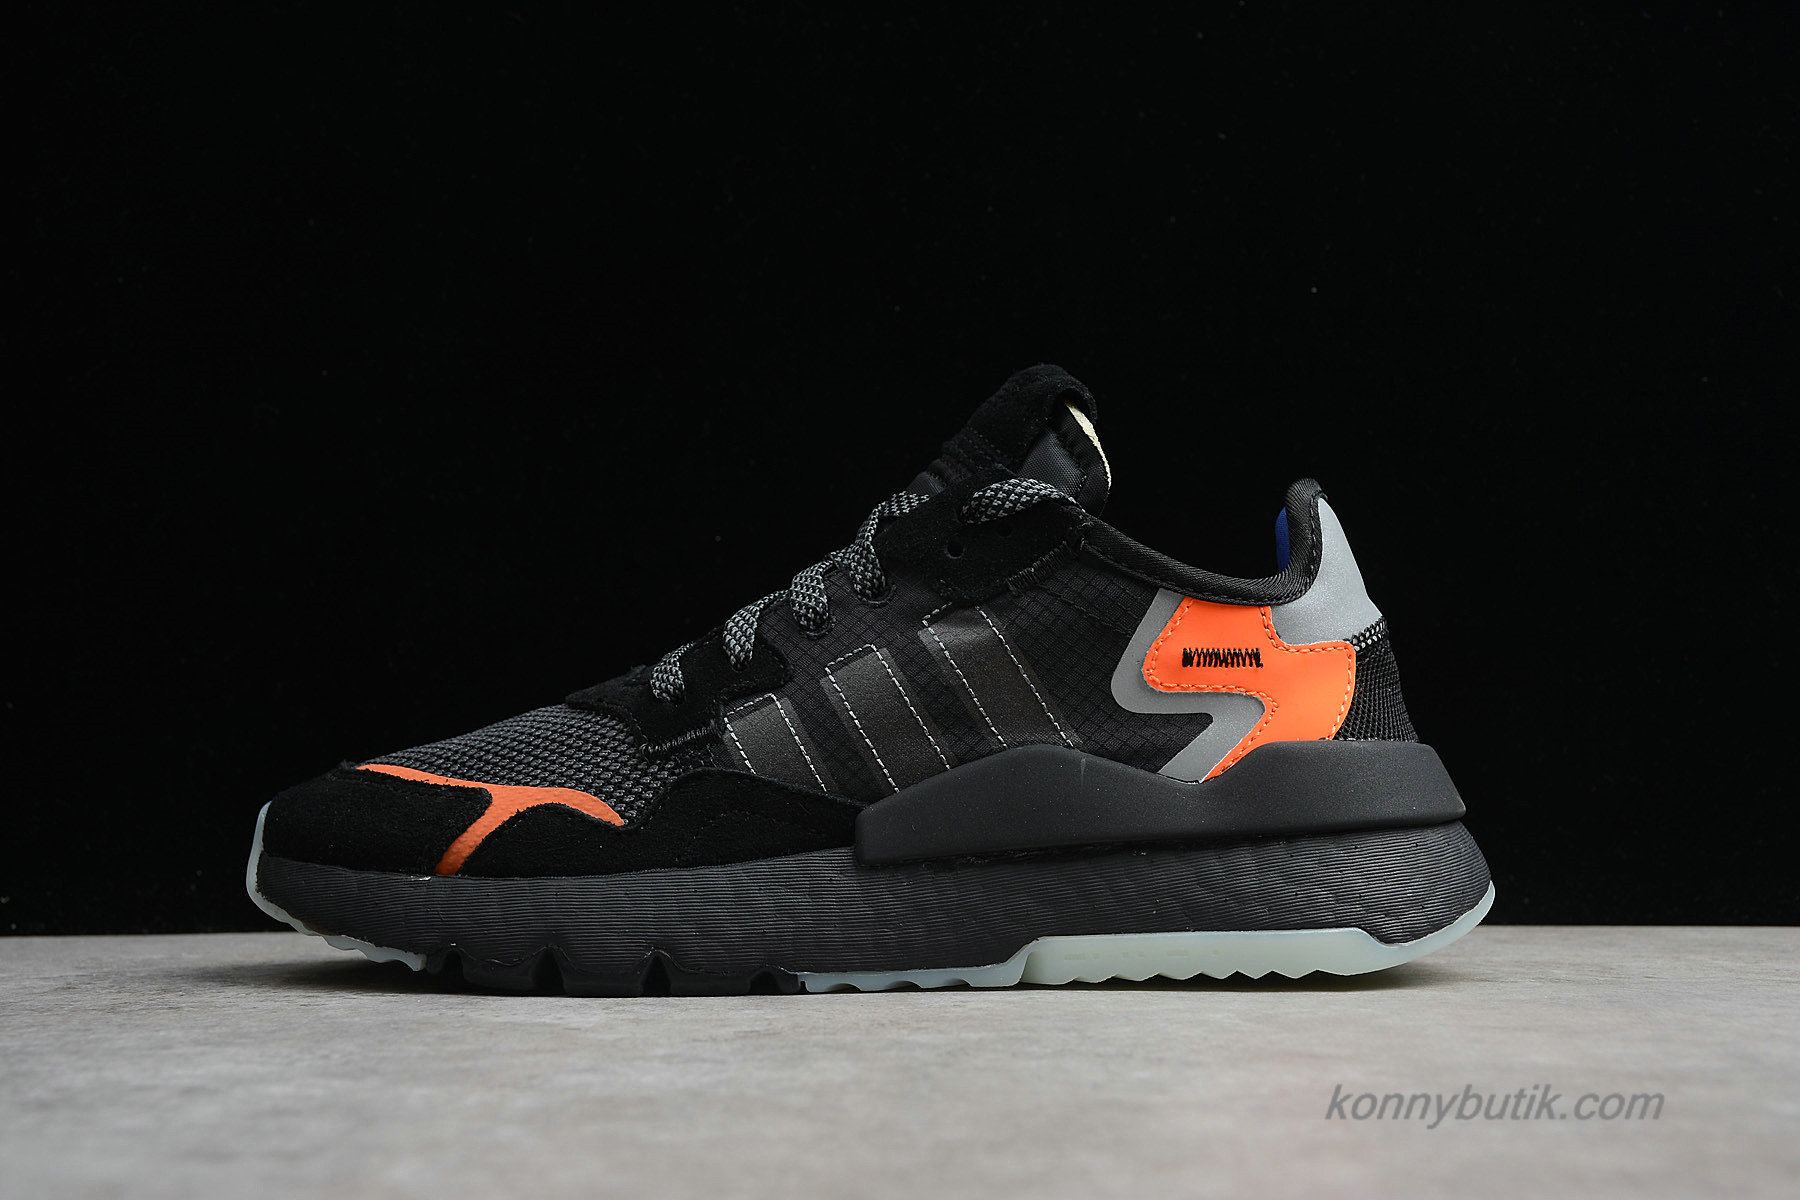 Adidas Nite Jogger 2019 Boost 3M Unisex Sko Sort / Orange / Grå (CG7088)